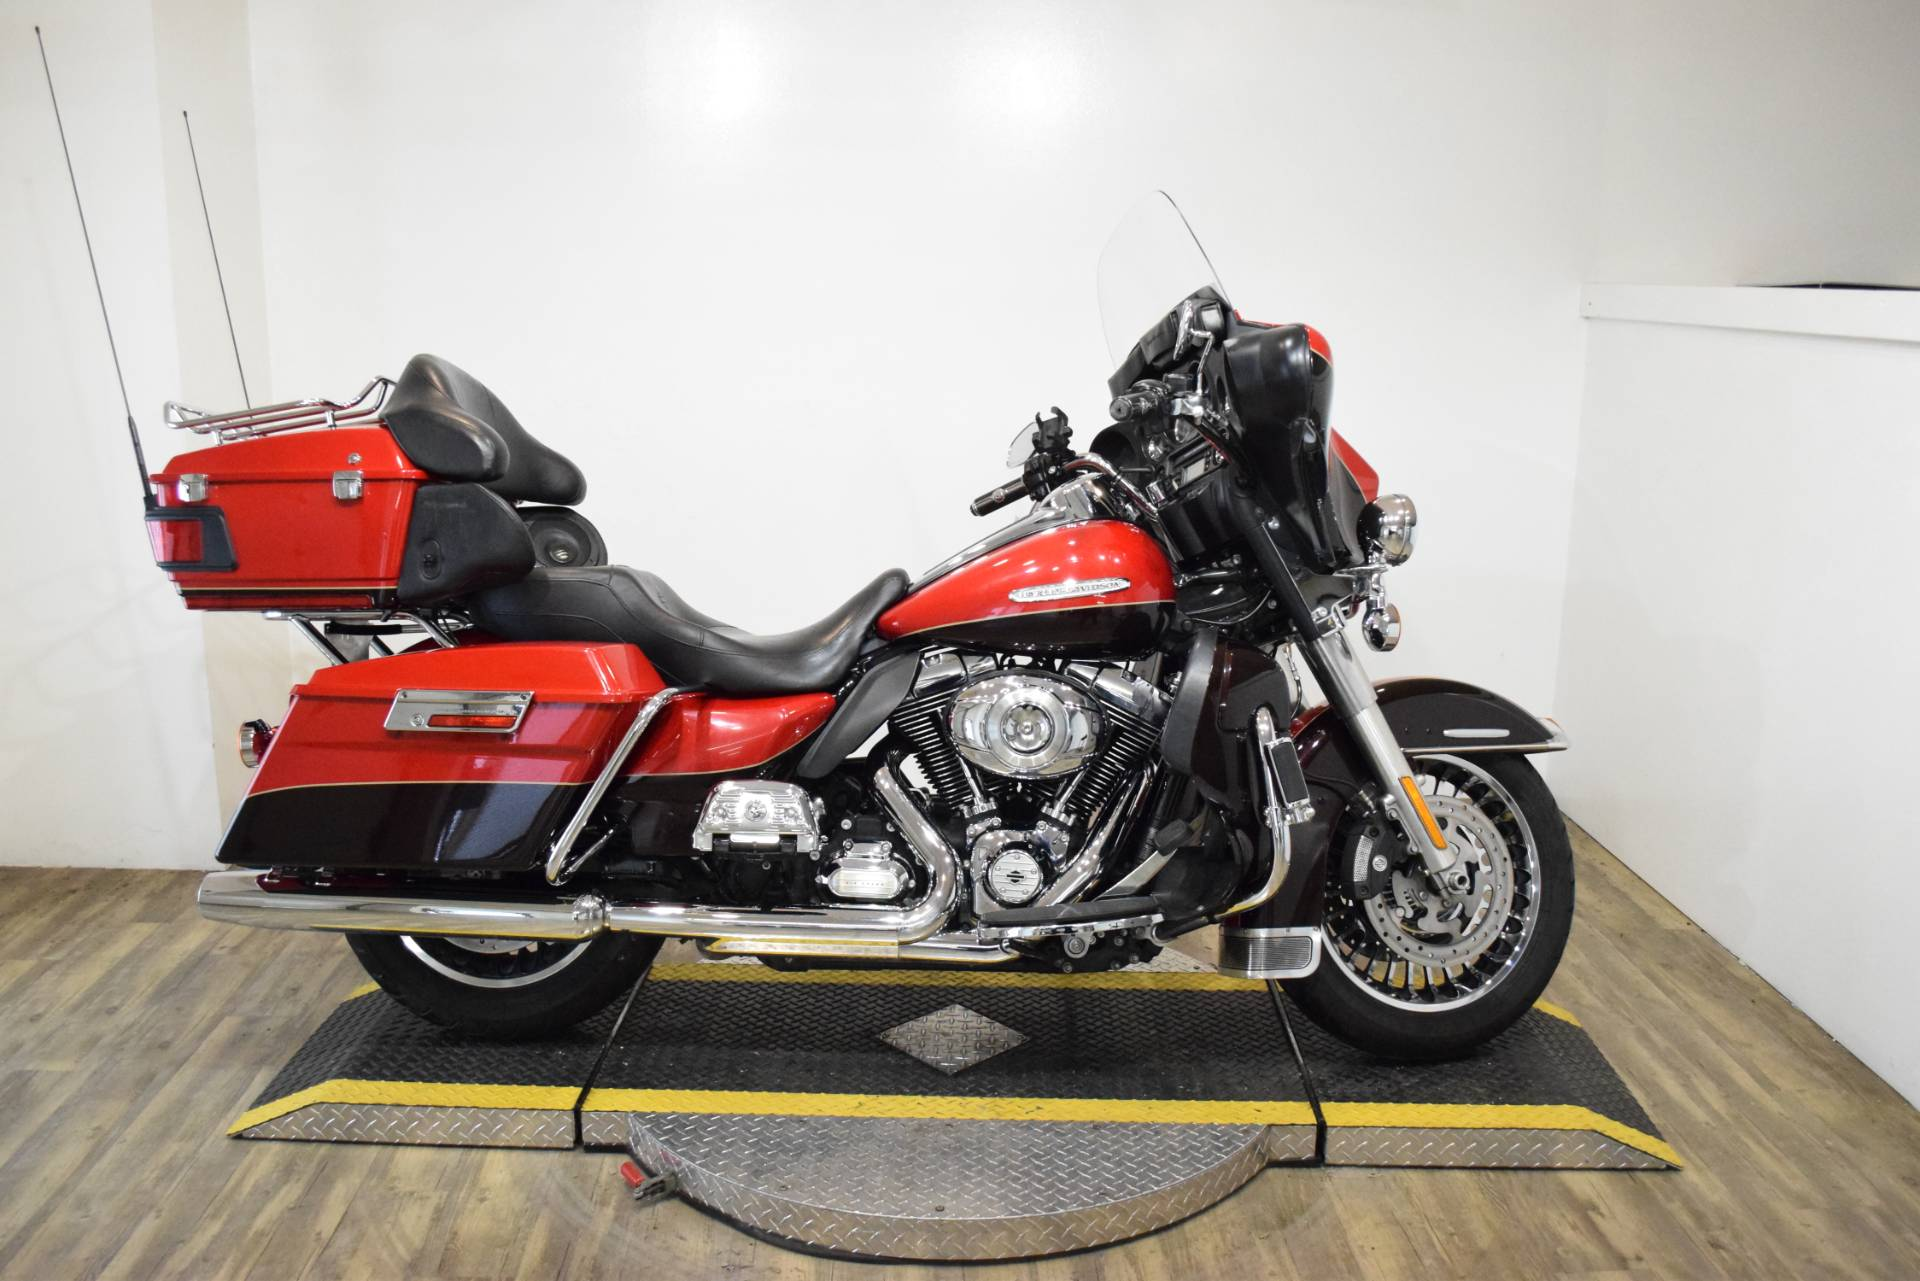 2011 Harley-Davidson Electra Glide® Ultra Limited in Wauconda, Illinois - Photo 1